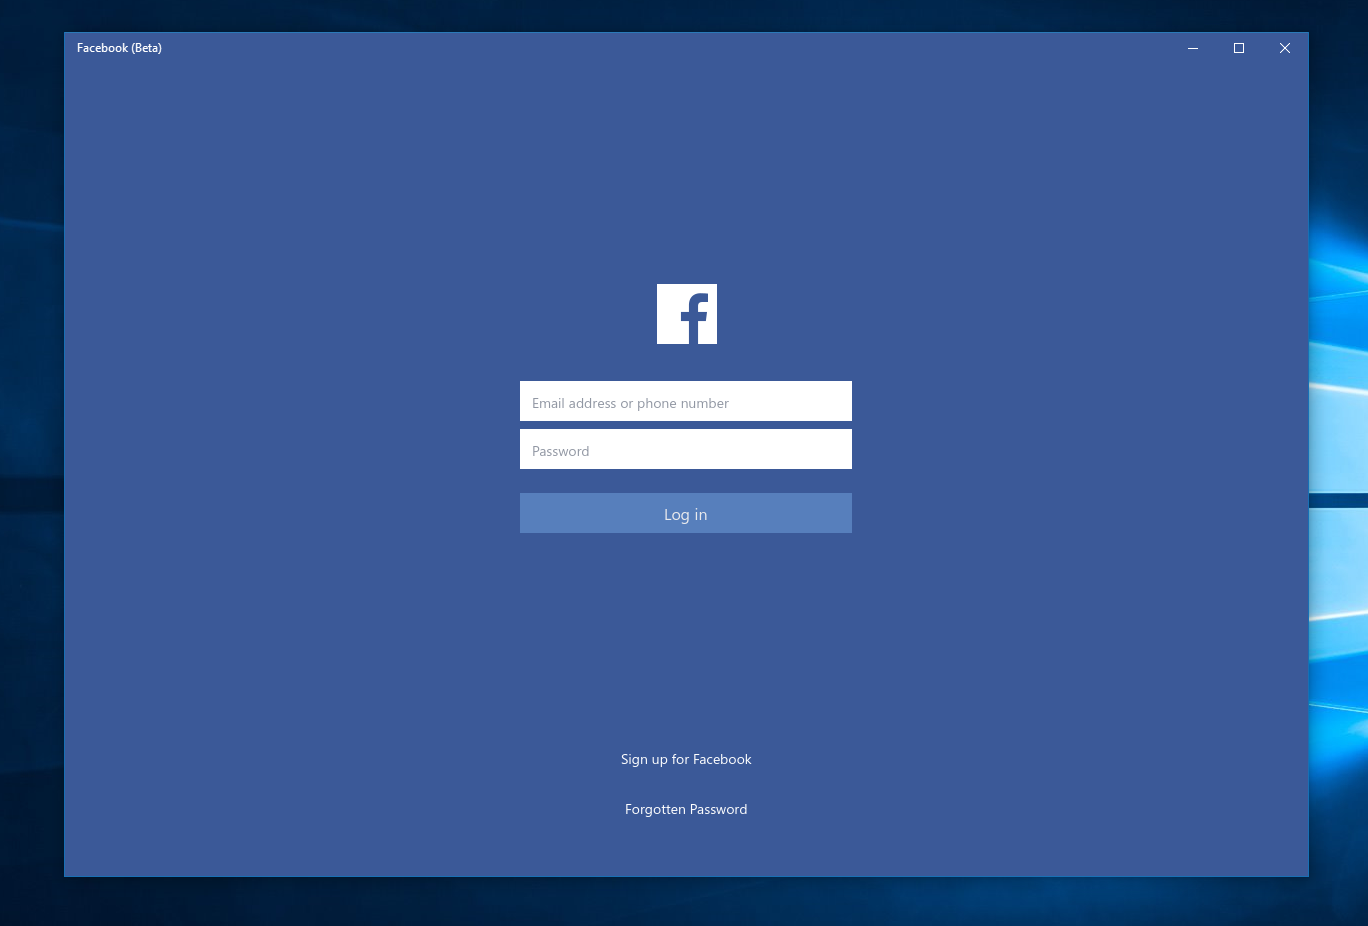 Facebook sign up download